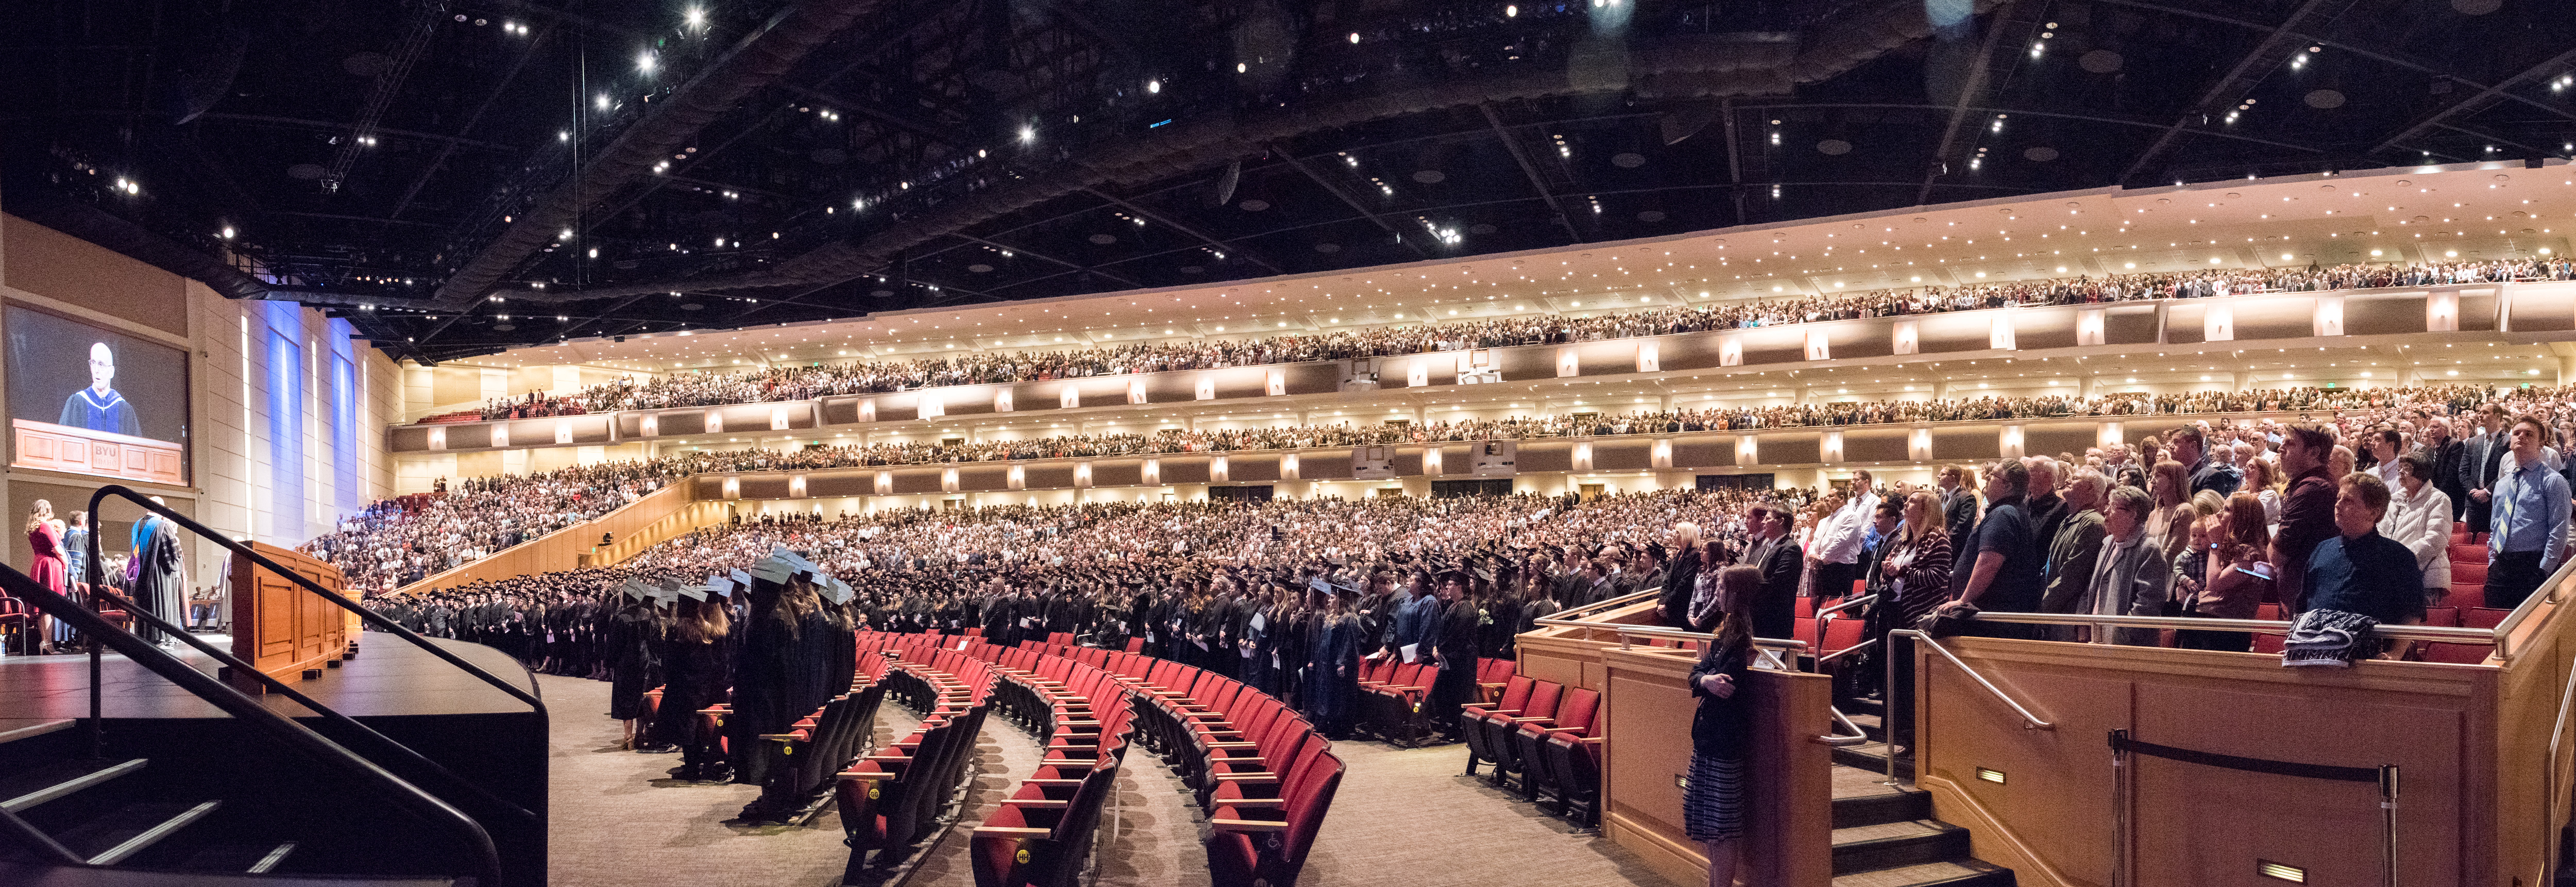 Winter Commencement Service at the BYU-Idaho Center on April 12, 2019.